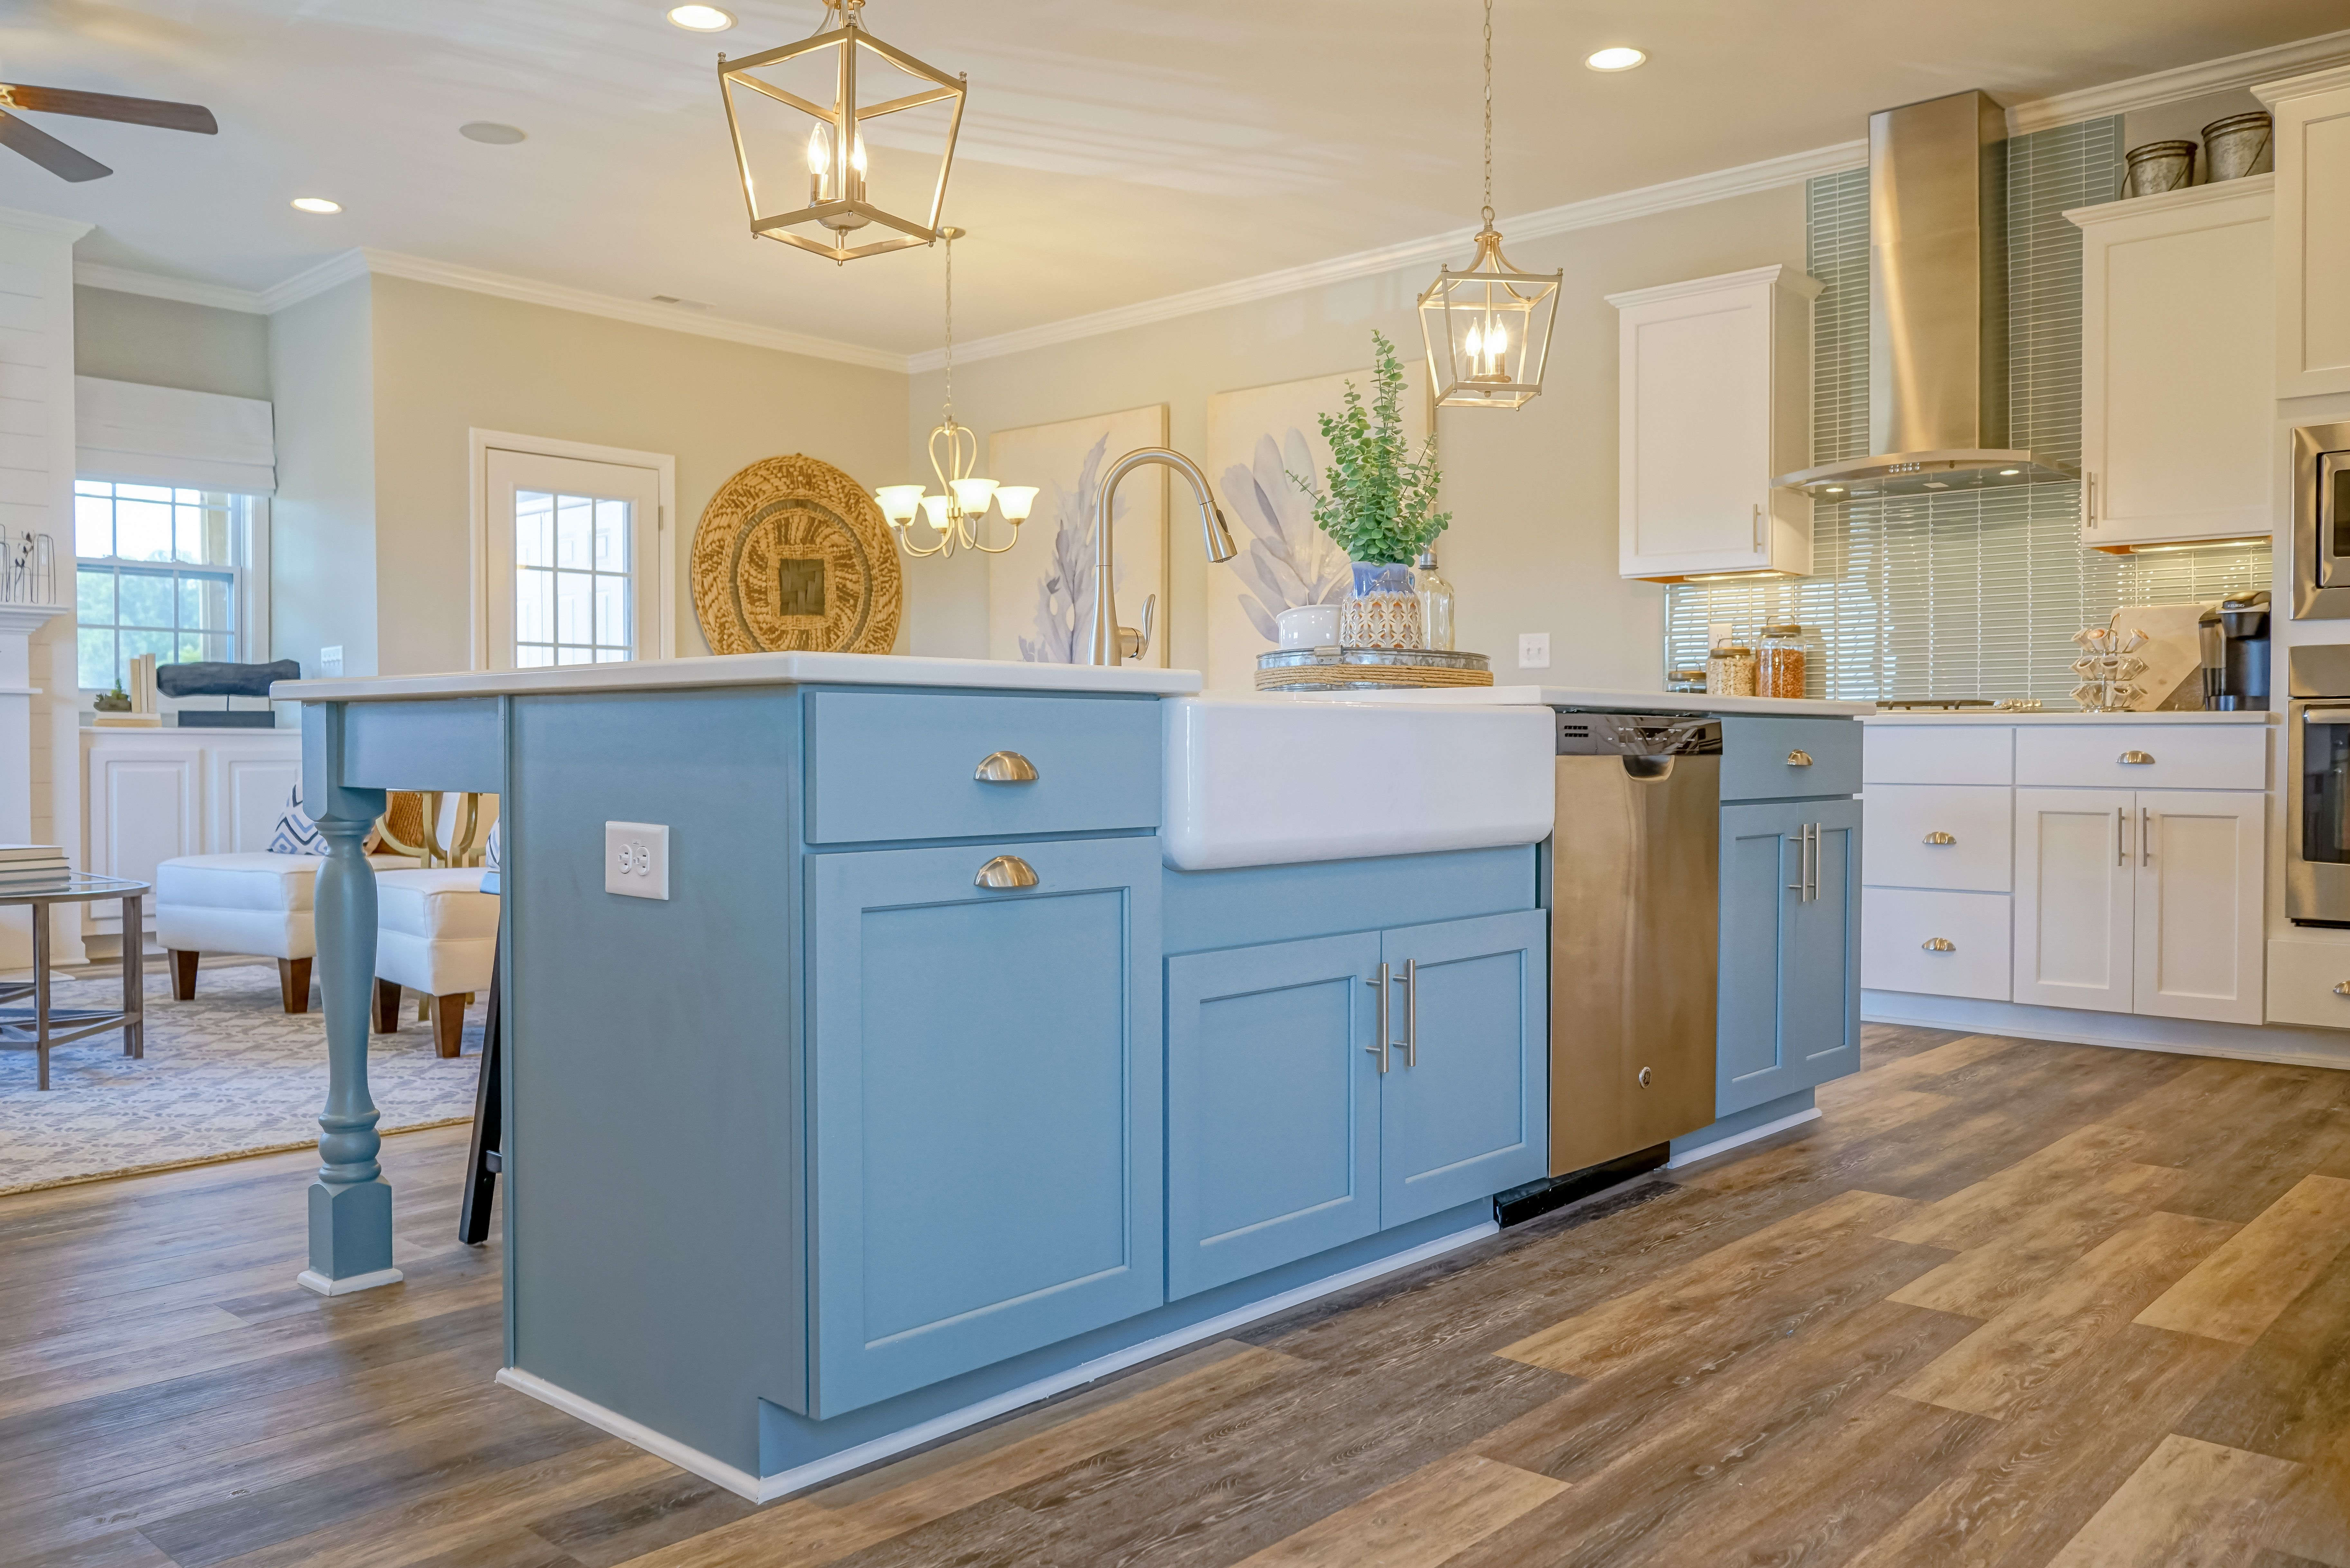 Blue cabinets and white countertops in a kitchen | "|7303|4874|?|en|2|0411f65fb693d485590fa39d8e953ad9|False|UNLIKELY|0.31407010555267334